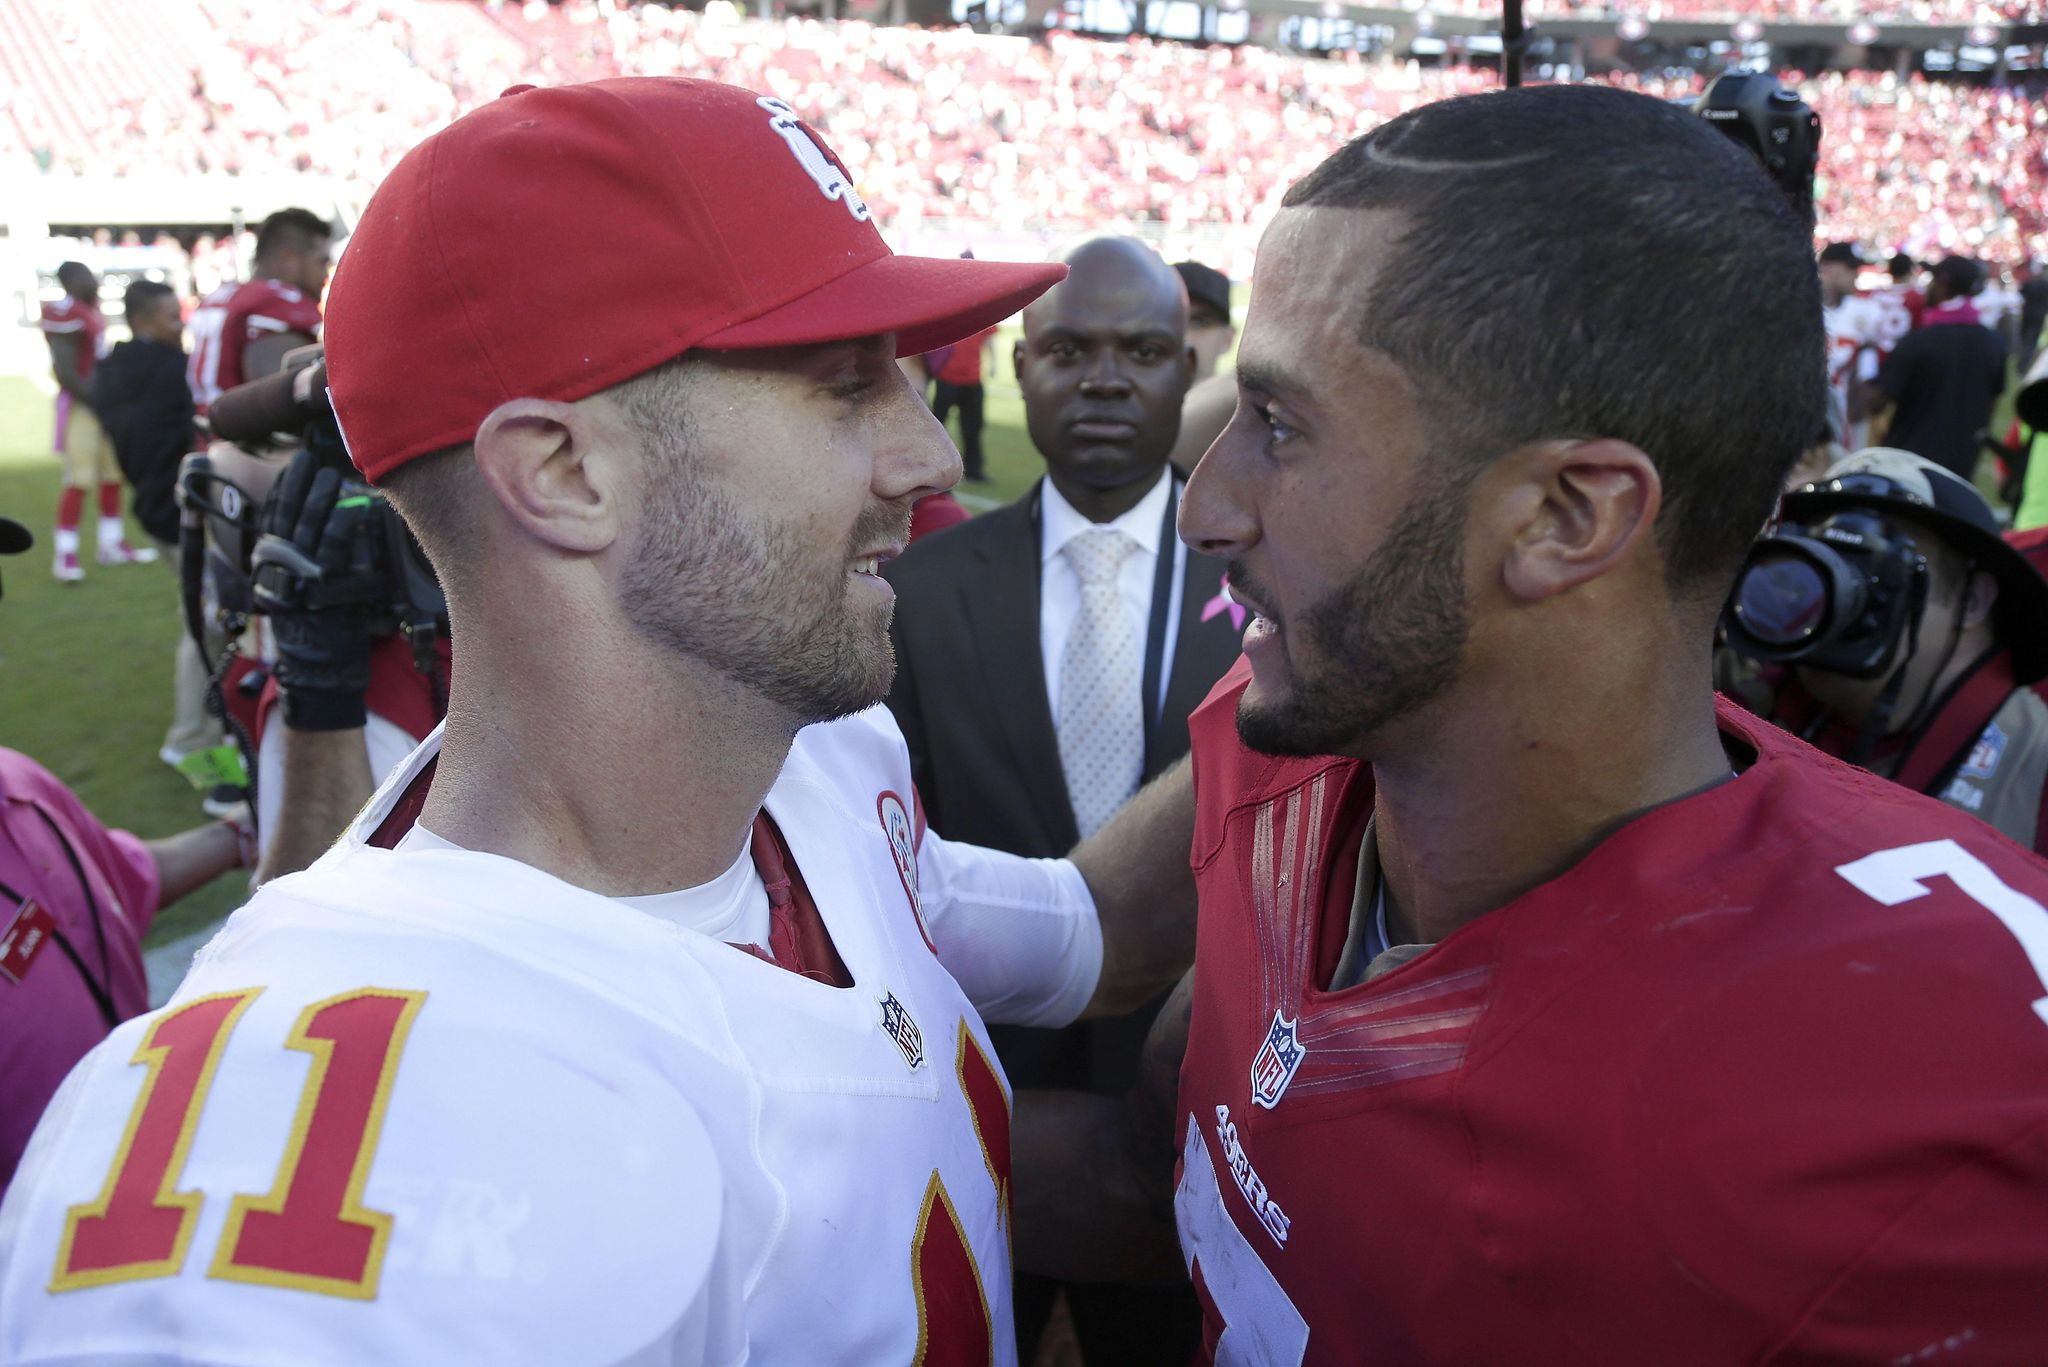 Redskins reportedly not interested in Colin Kaepernick